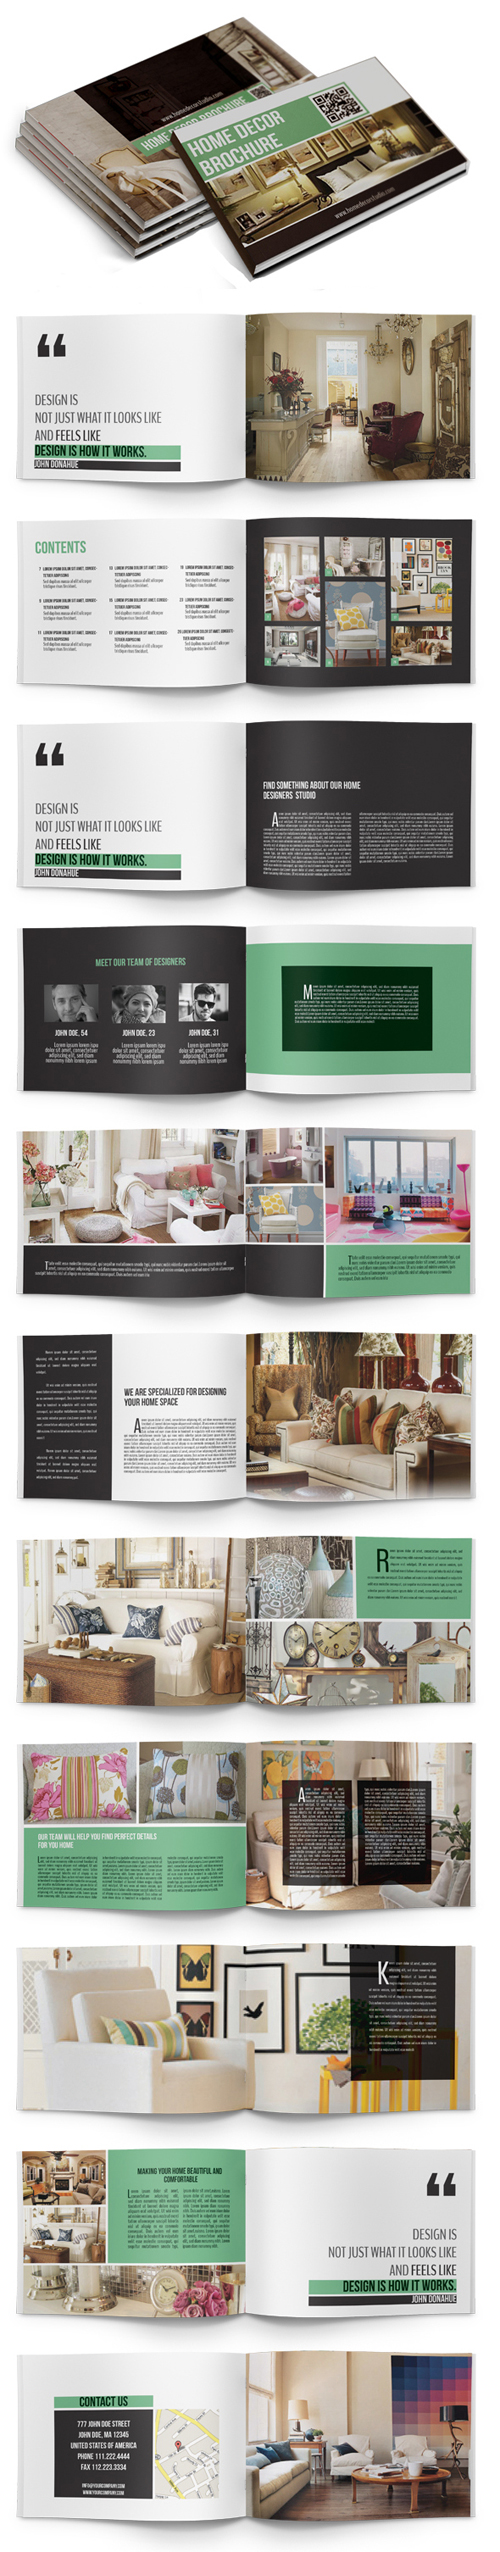 Home Decor Brochure